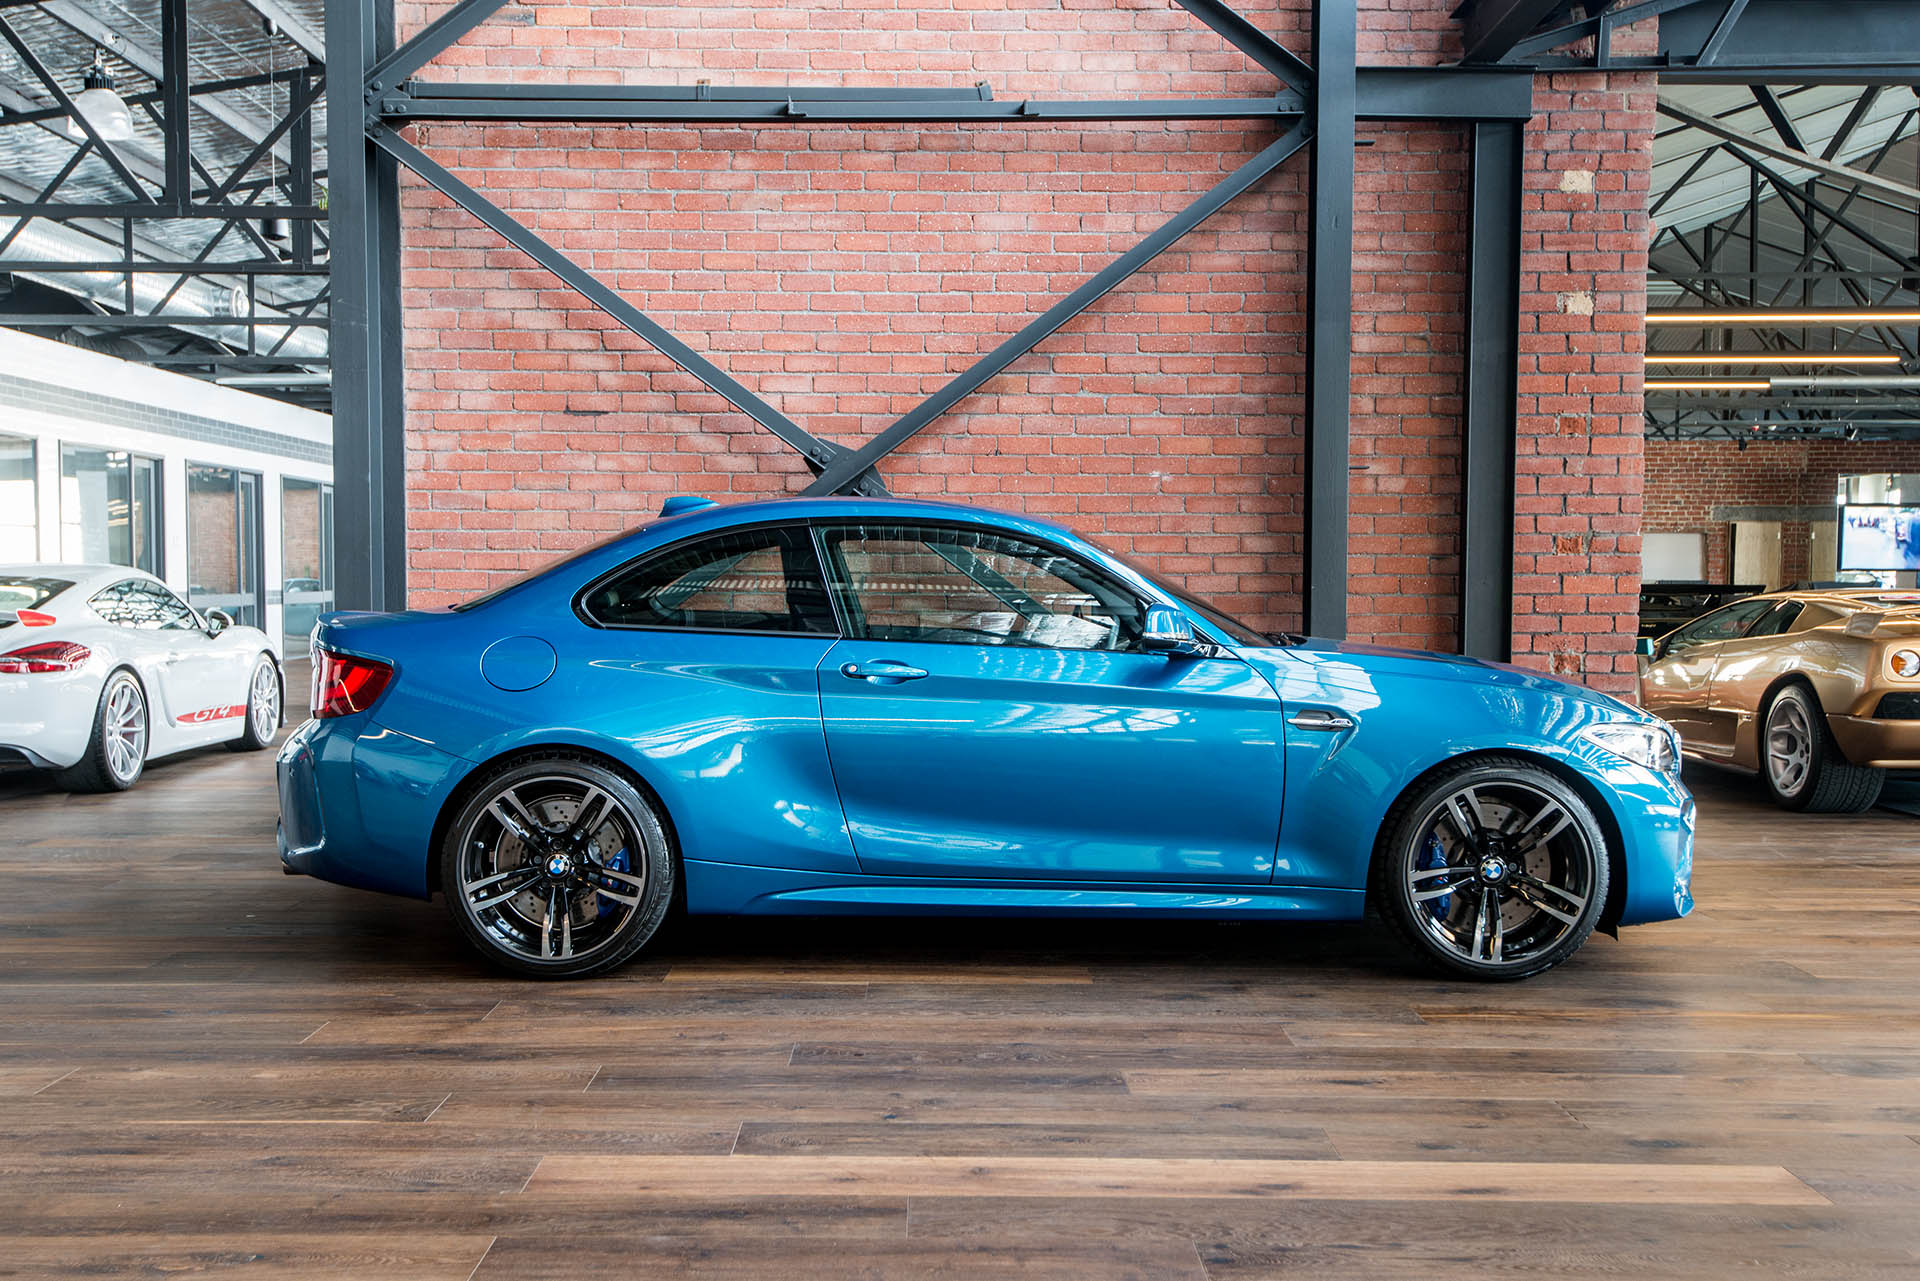 How To Unlock Steering Wheel >> 2016 BMW M2 - Richmonds - Classic and Prestige Cars - Storage and Sales - Adelaide, Australia